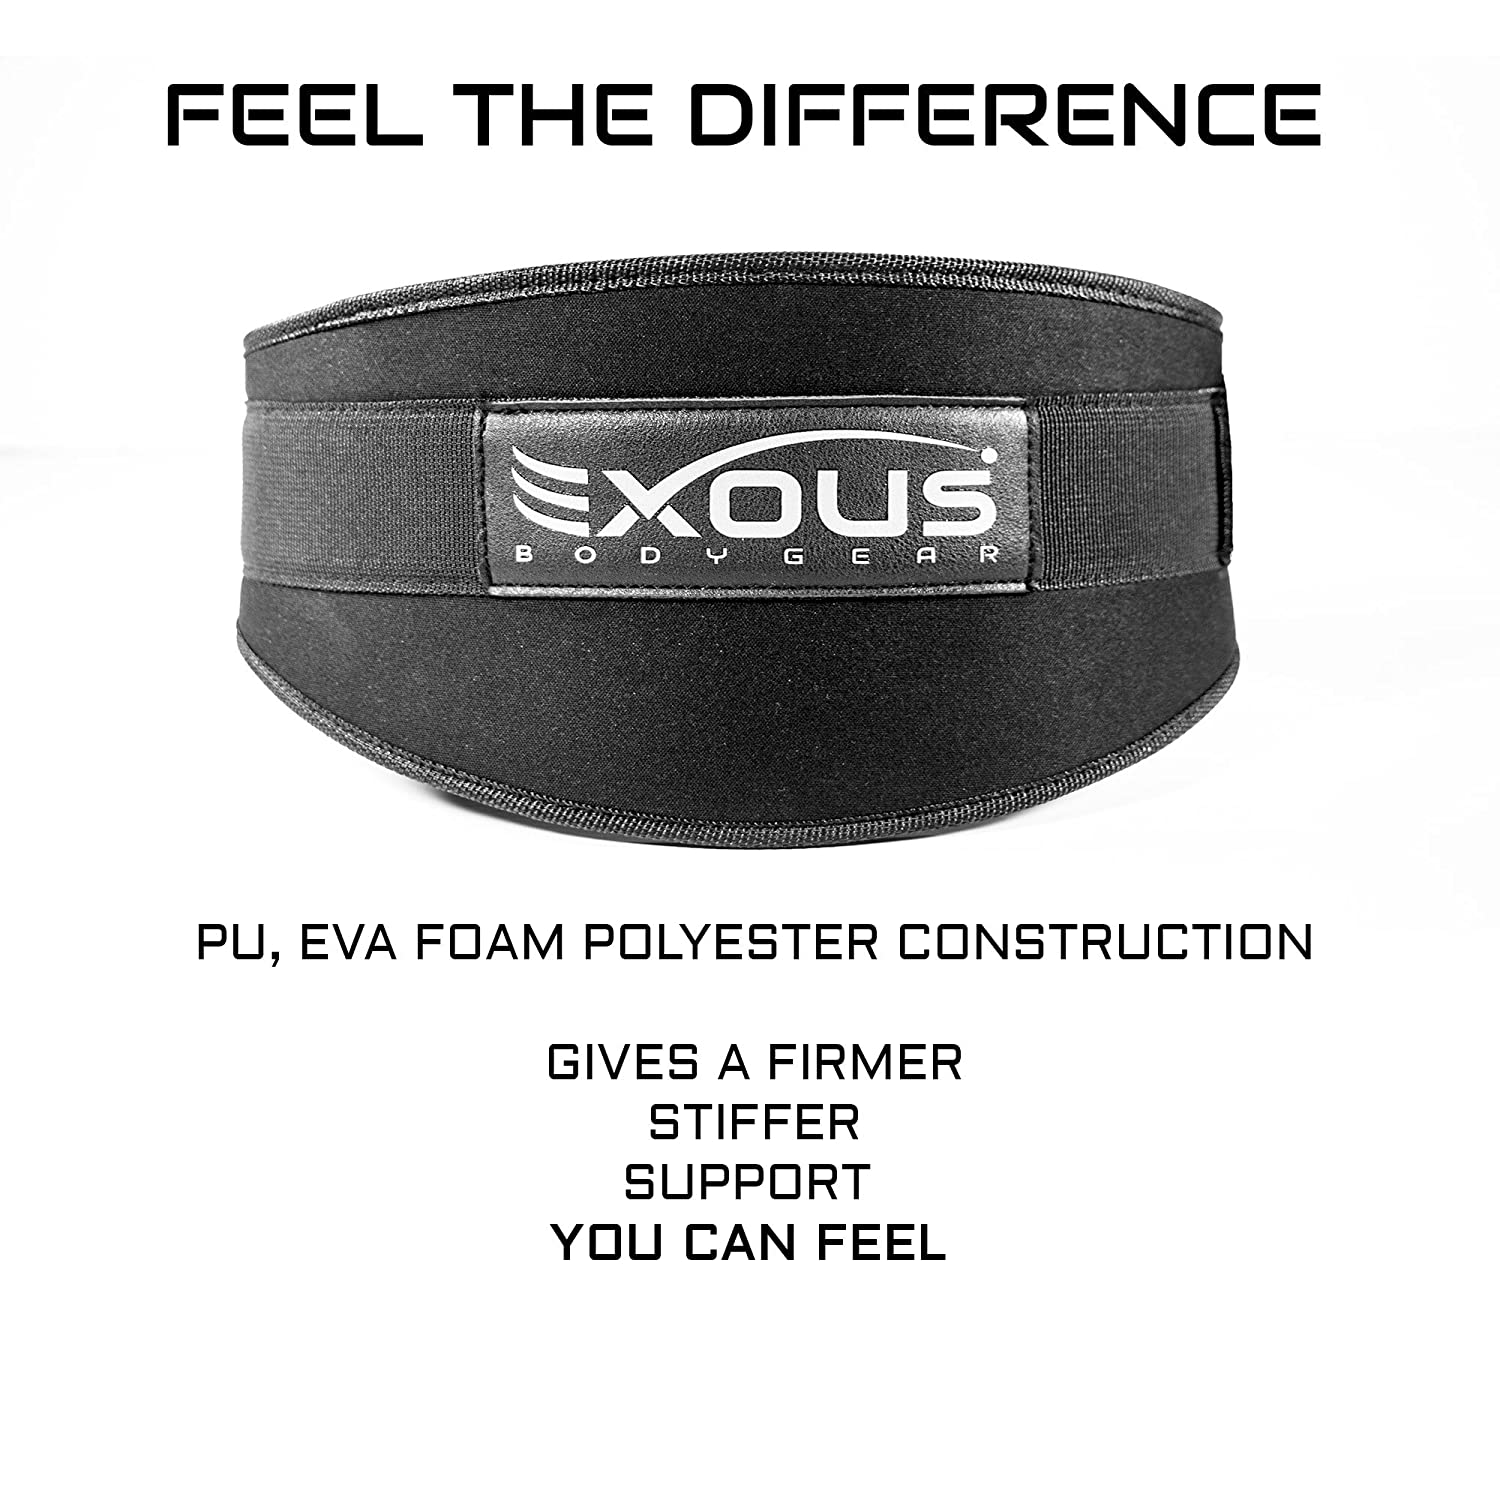 EXOUS Bodygear Performance Weight Lifting Belt 5.5inch Lumber Back Support – Adjustable Velcro Ergonomically Shaped for Squats, Power Lifting – Olympic Lifts